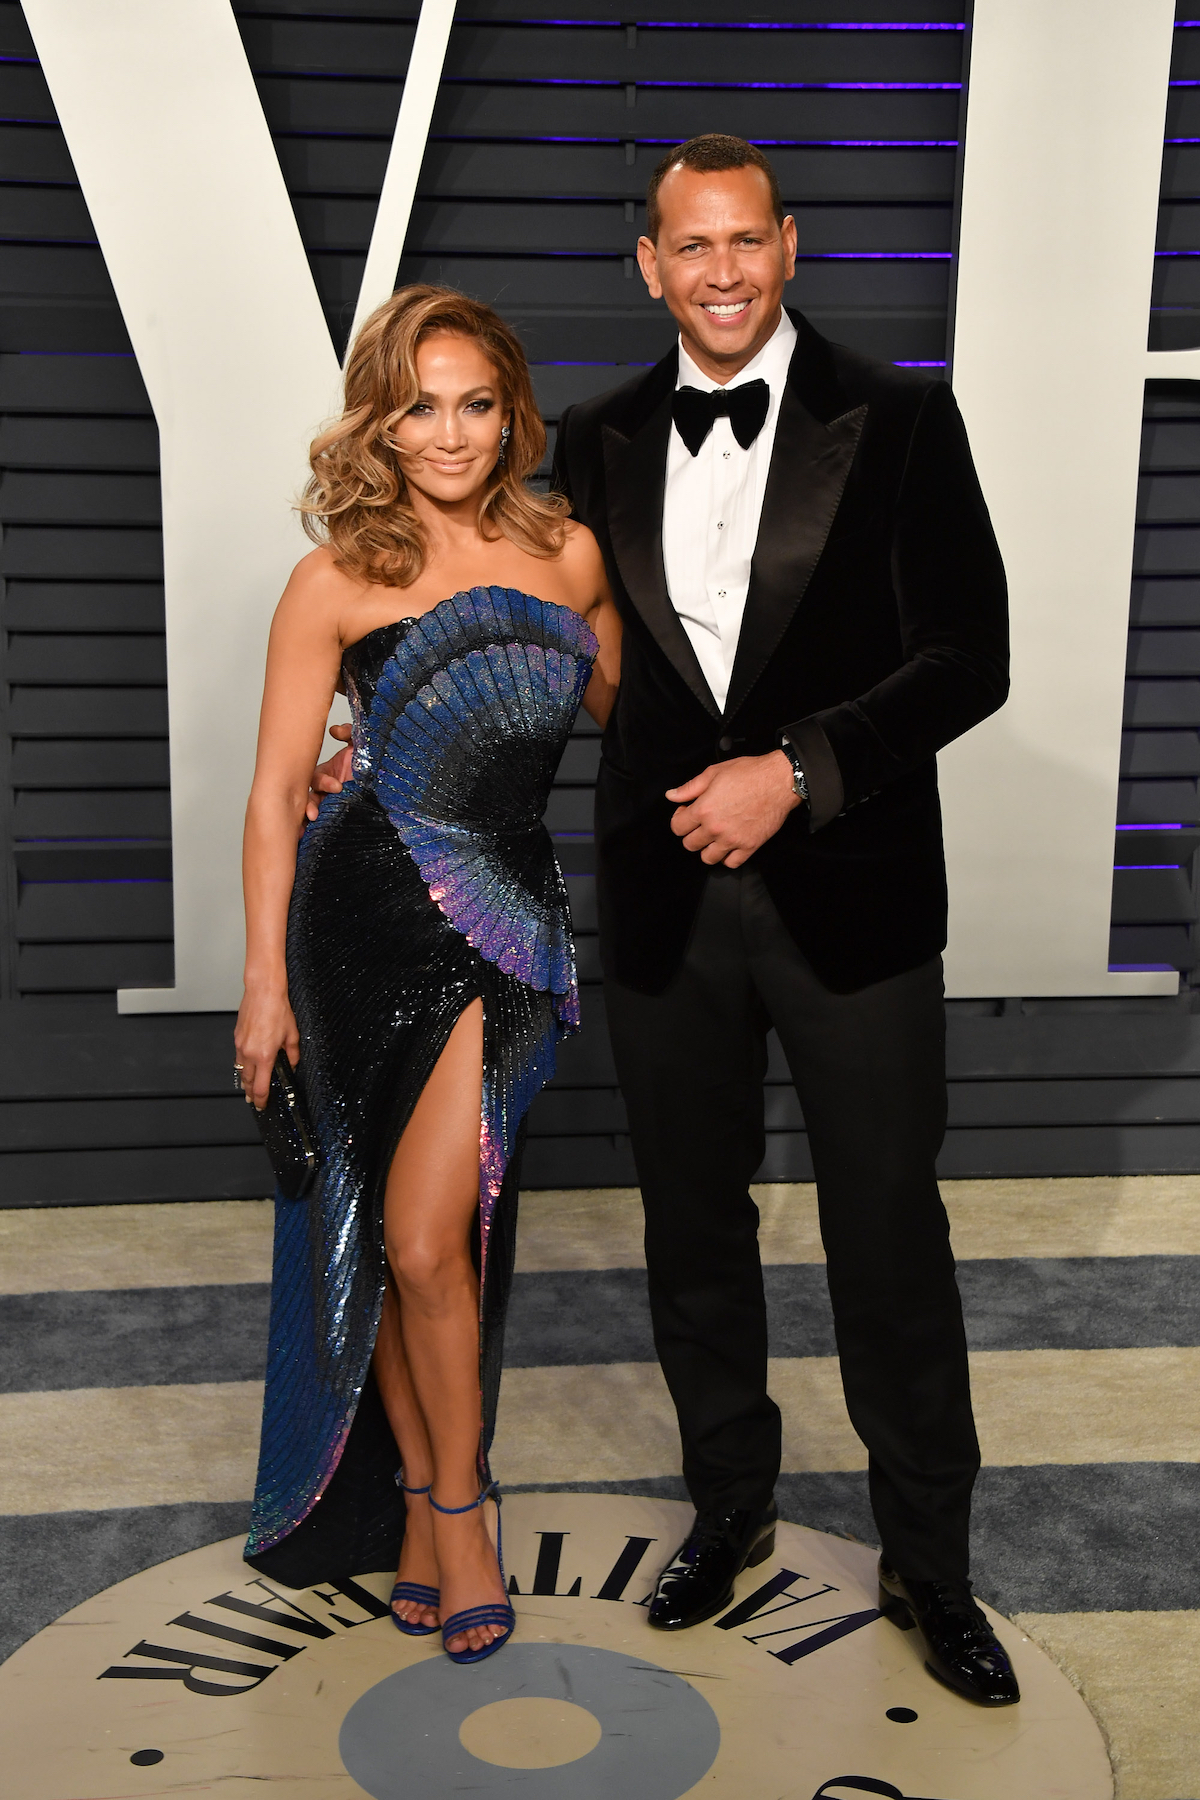 Alex Rodriguez Rehearsed His Proposal to Jennifer Lopez - Jennifer Lopez and Alex Rodriguez attend the 2019 Vanity Fair Oscar Party hosted by Radhika Jones at Wallis Annenberg Center for the Performing Arts on February 24, 2019 in Beverly Hills, California.